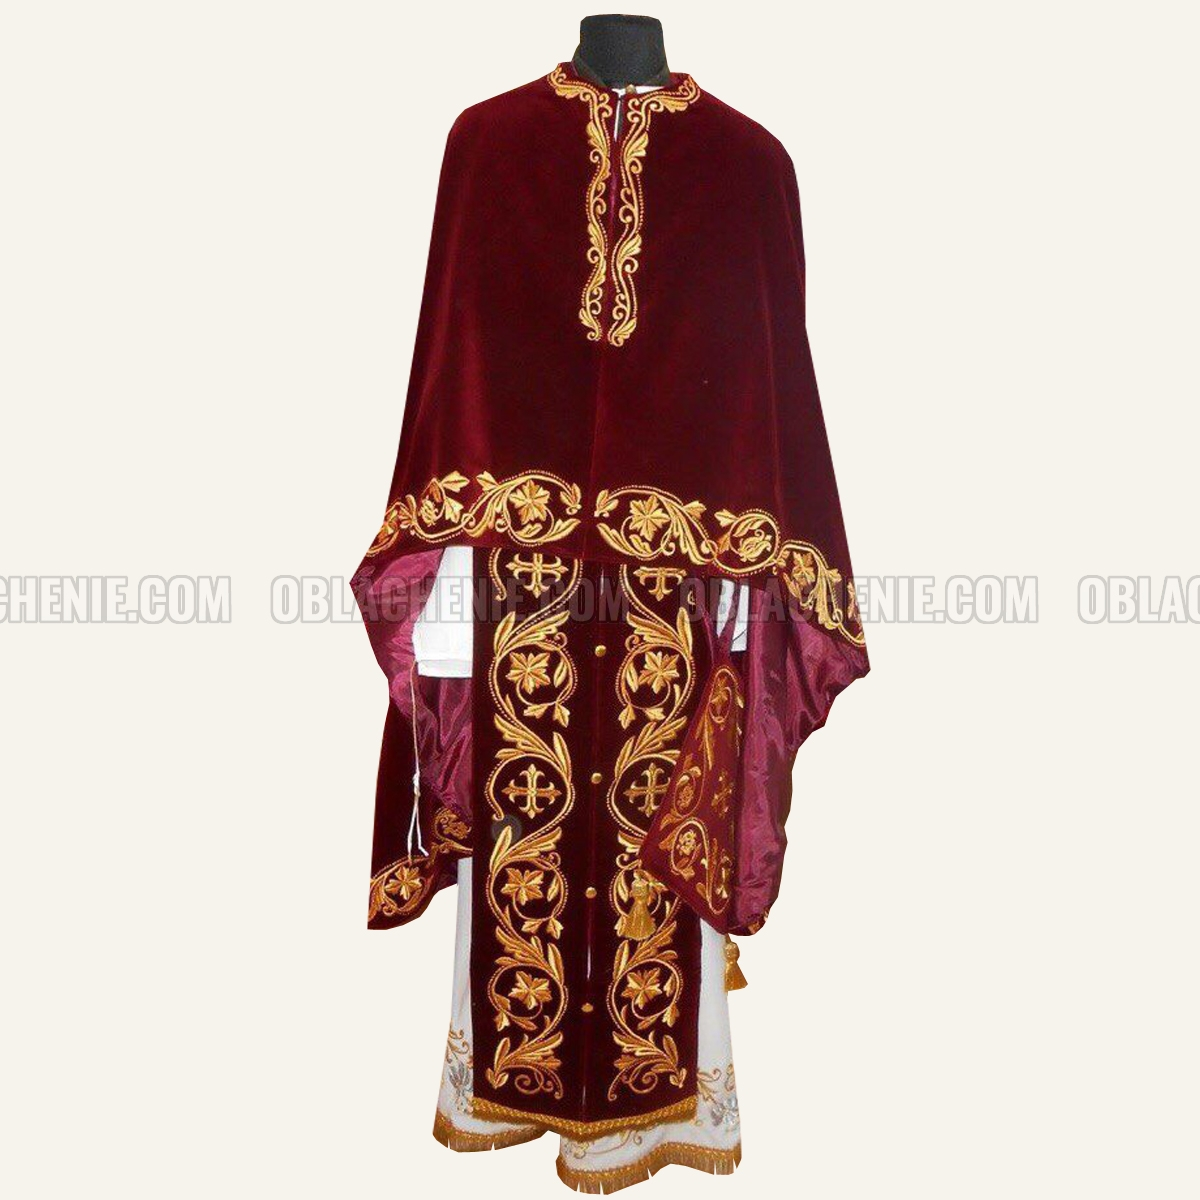 Embroidered priest's vestments 10226